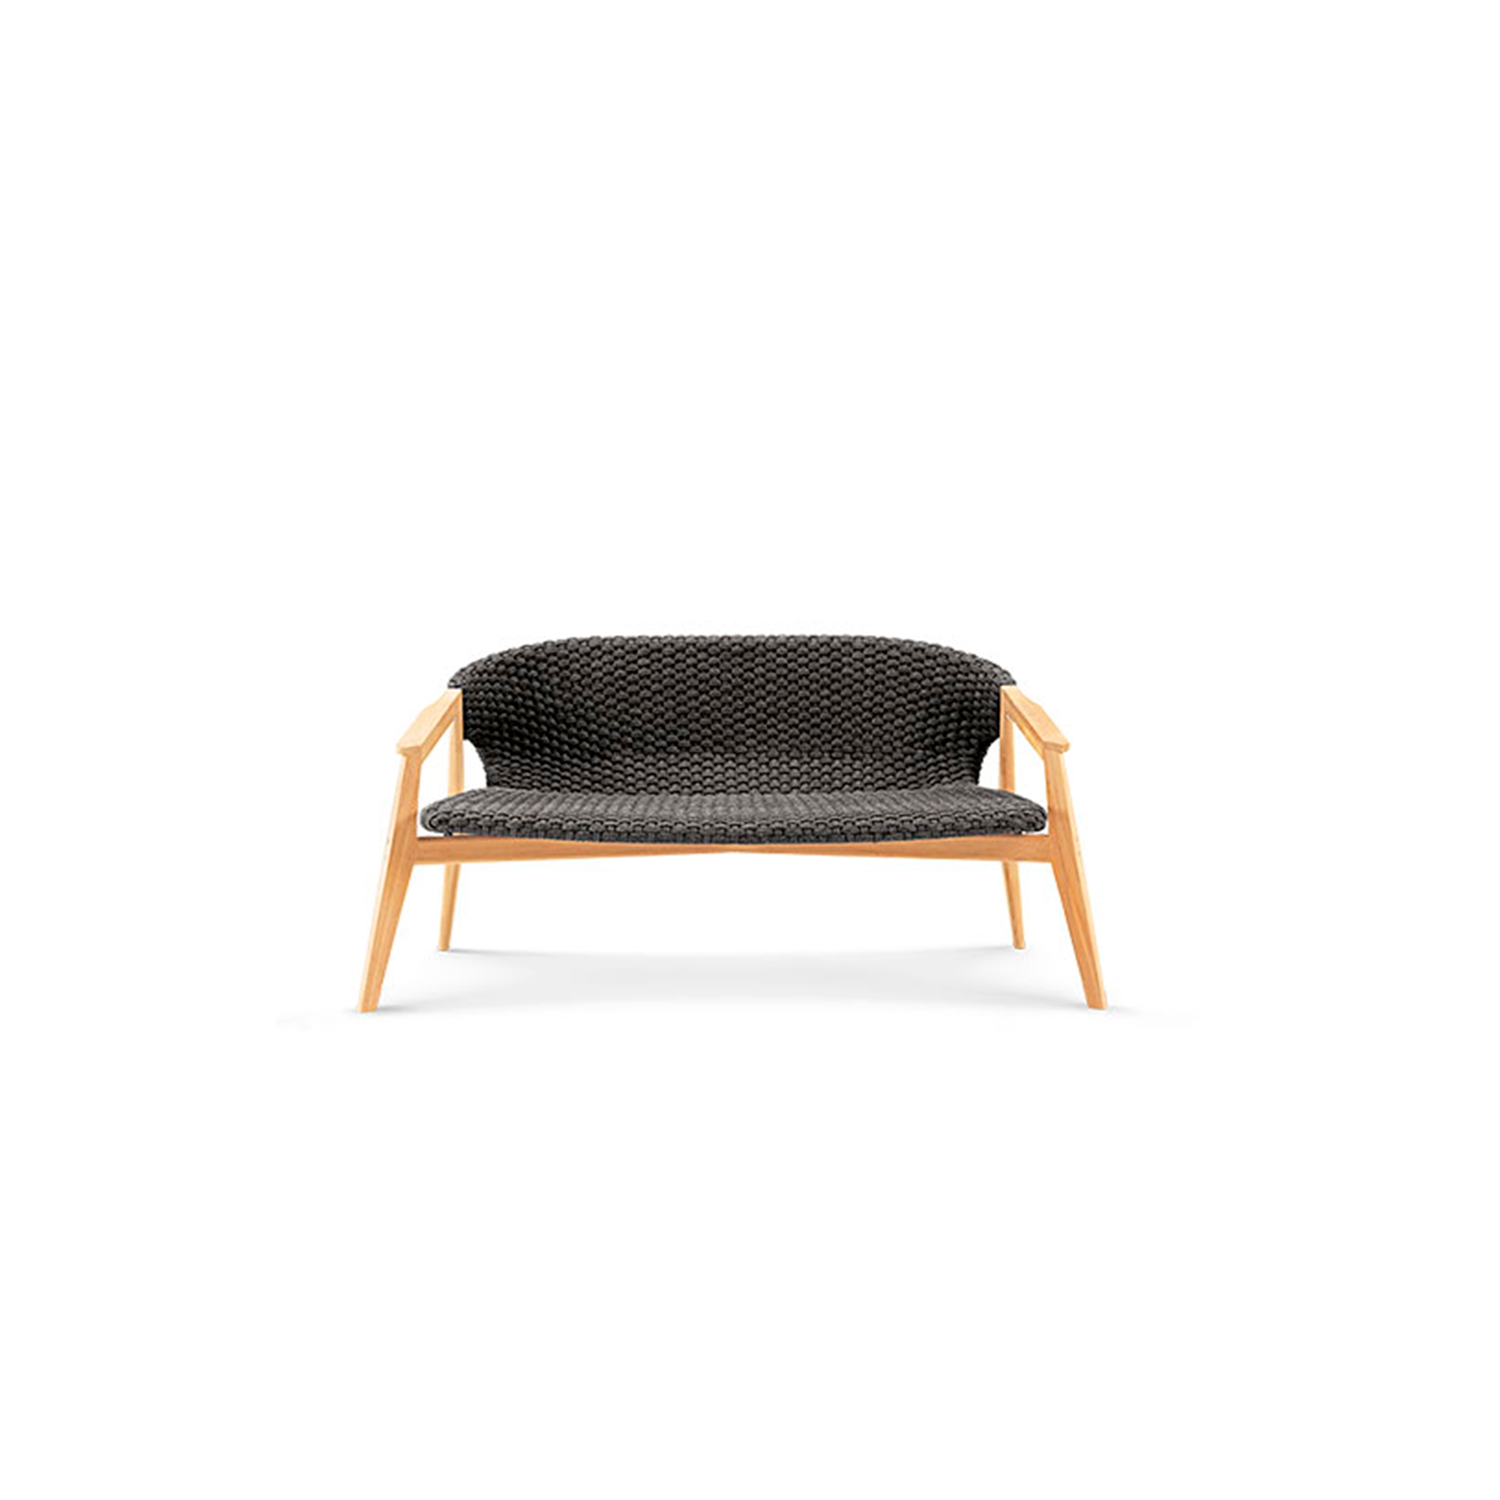 Knit 2 Seater Sofa - Knit is a complete line of tables, chairs and lounge chairs in teak and woven rope that expresses with refinement a perfect synthesis of aesthetics, functionality and ergonomics. The iconic collection is enriched by the new version in pickled teak and light gray rope and the rocking version of the lounge chair with high back, thus offering a new and special interpretation of the classic bergère.  Seat and back cushions available at extra cost. Please enquire for more information. | Matter of Stuff